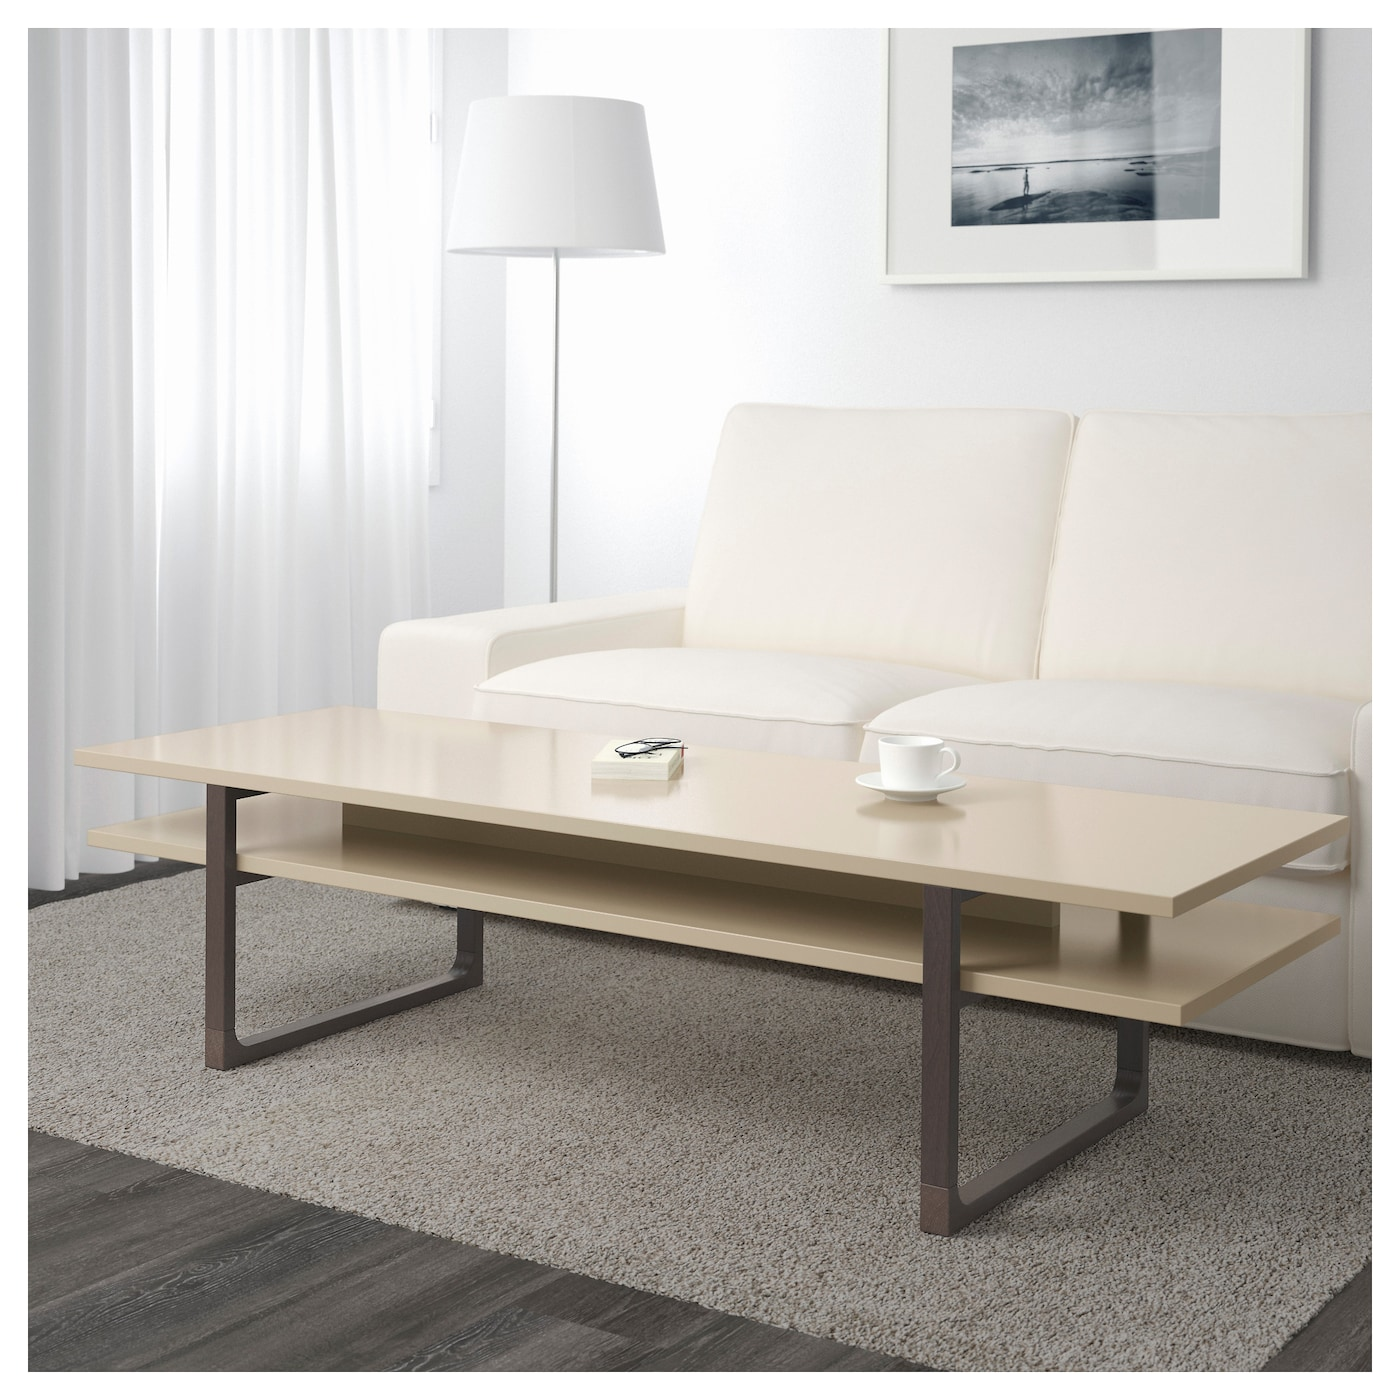 rissna table basse beige 160x55 cm ikea. Black Bedroom Furniture Sets. Home Design Ideas